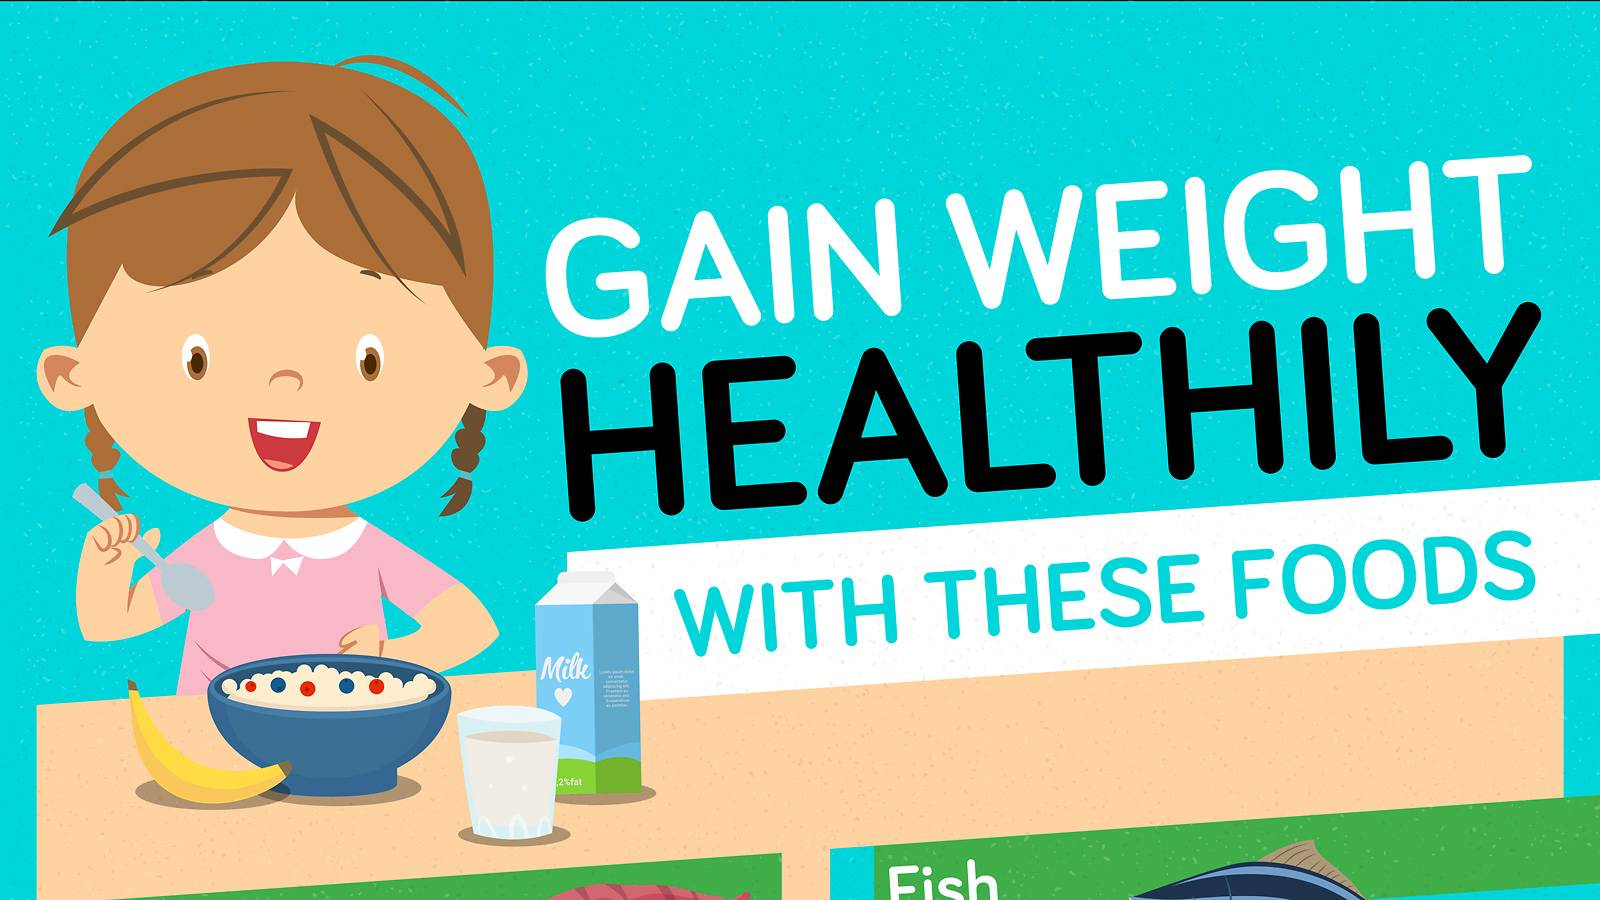 Tots---Foods-to-help-your-skinny-kid-gain-weight-healthily-[Infographic]-1